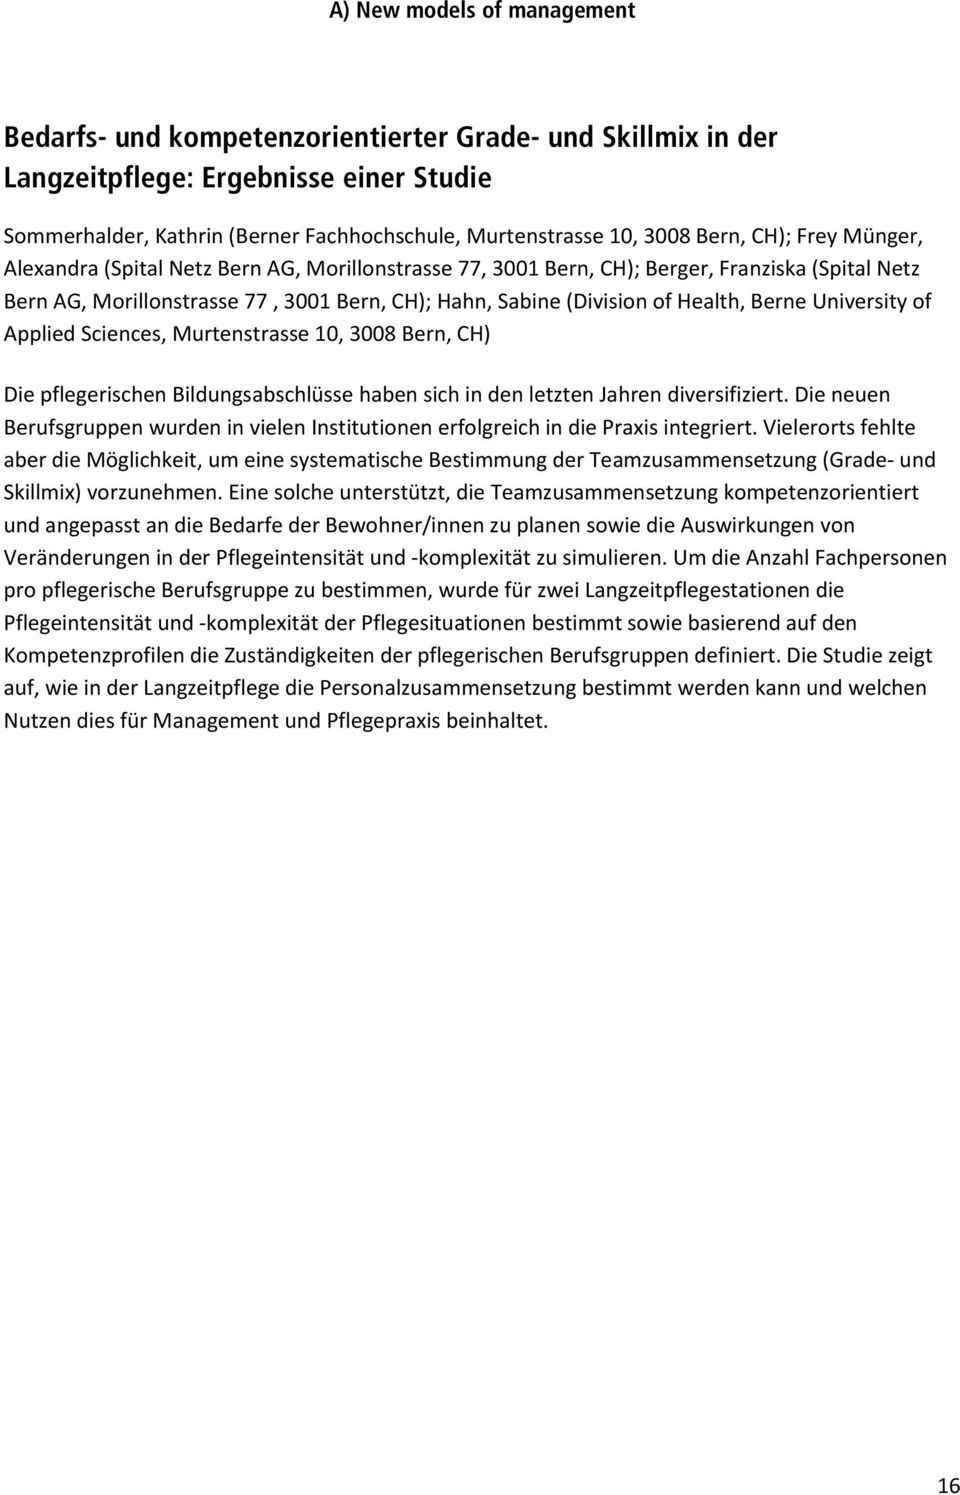 Sabine (Division of Health, Berne University of Applied Sciences, Murtenstrasse 10, 3008 Bern, CH) Die pflegerischen Bildungsabschlüsse haben sich in den letzten Jahren diversifiziert.